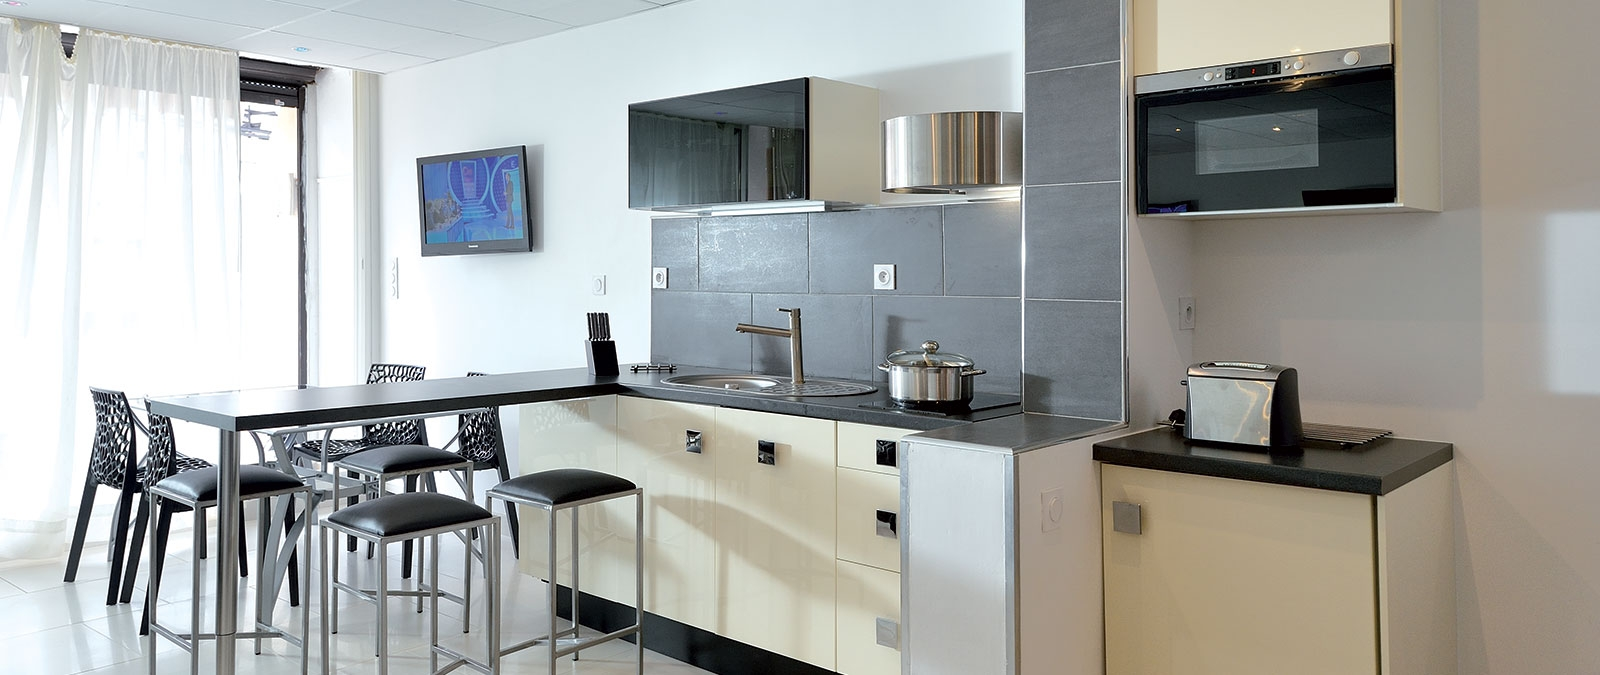 Kitchen area Chrome naturist studio flat for rent